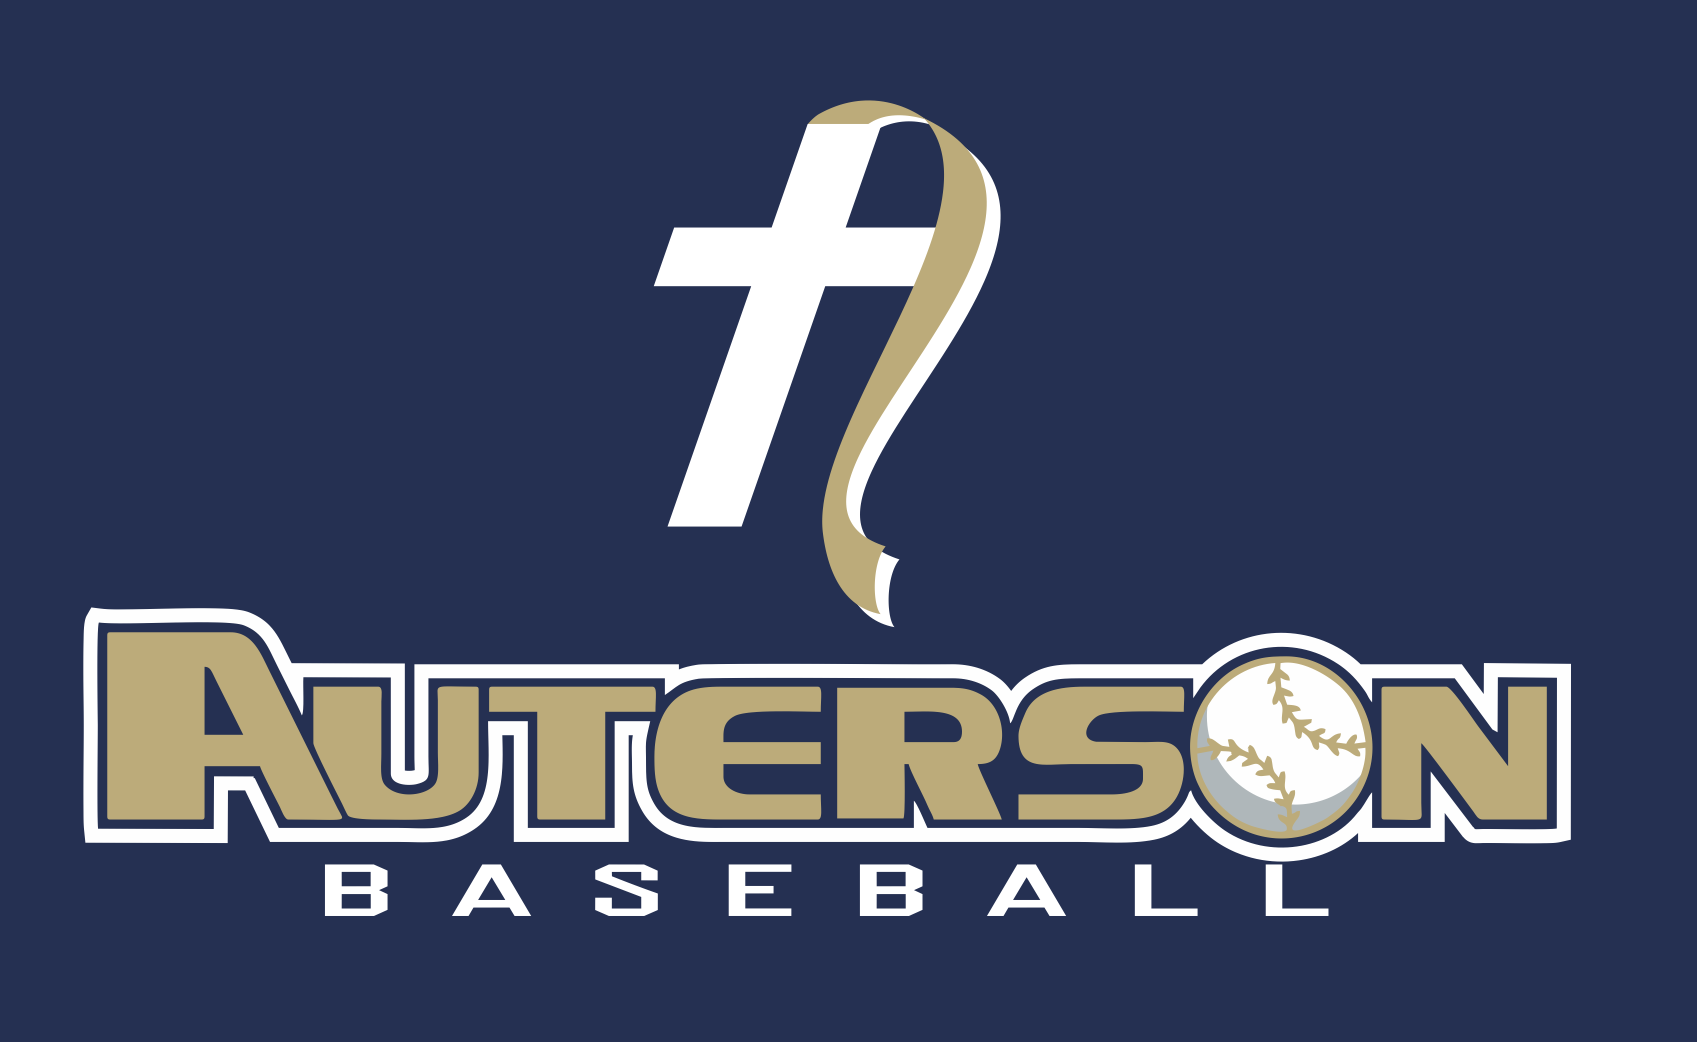 Auterson Baseball Logo Alt -  Copy.png